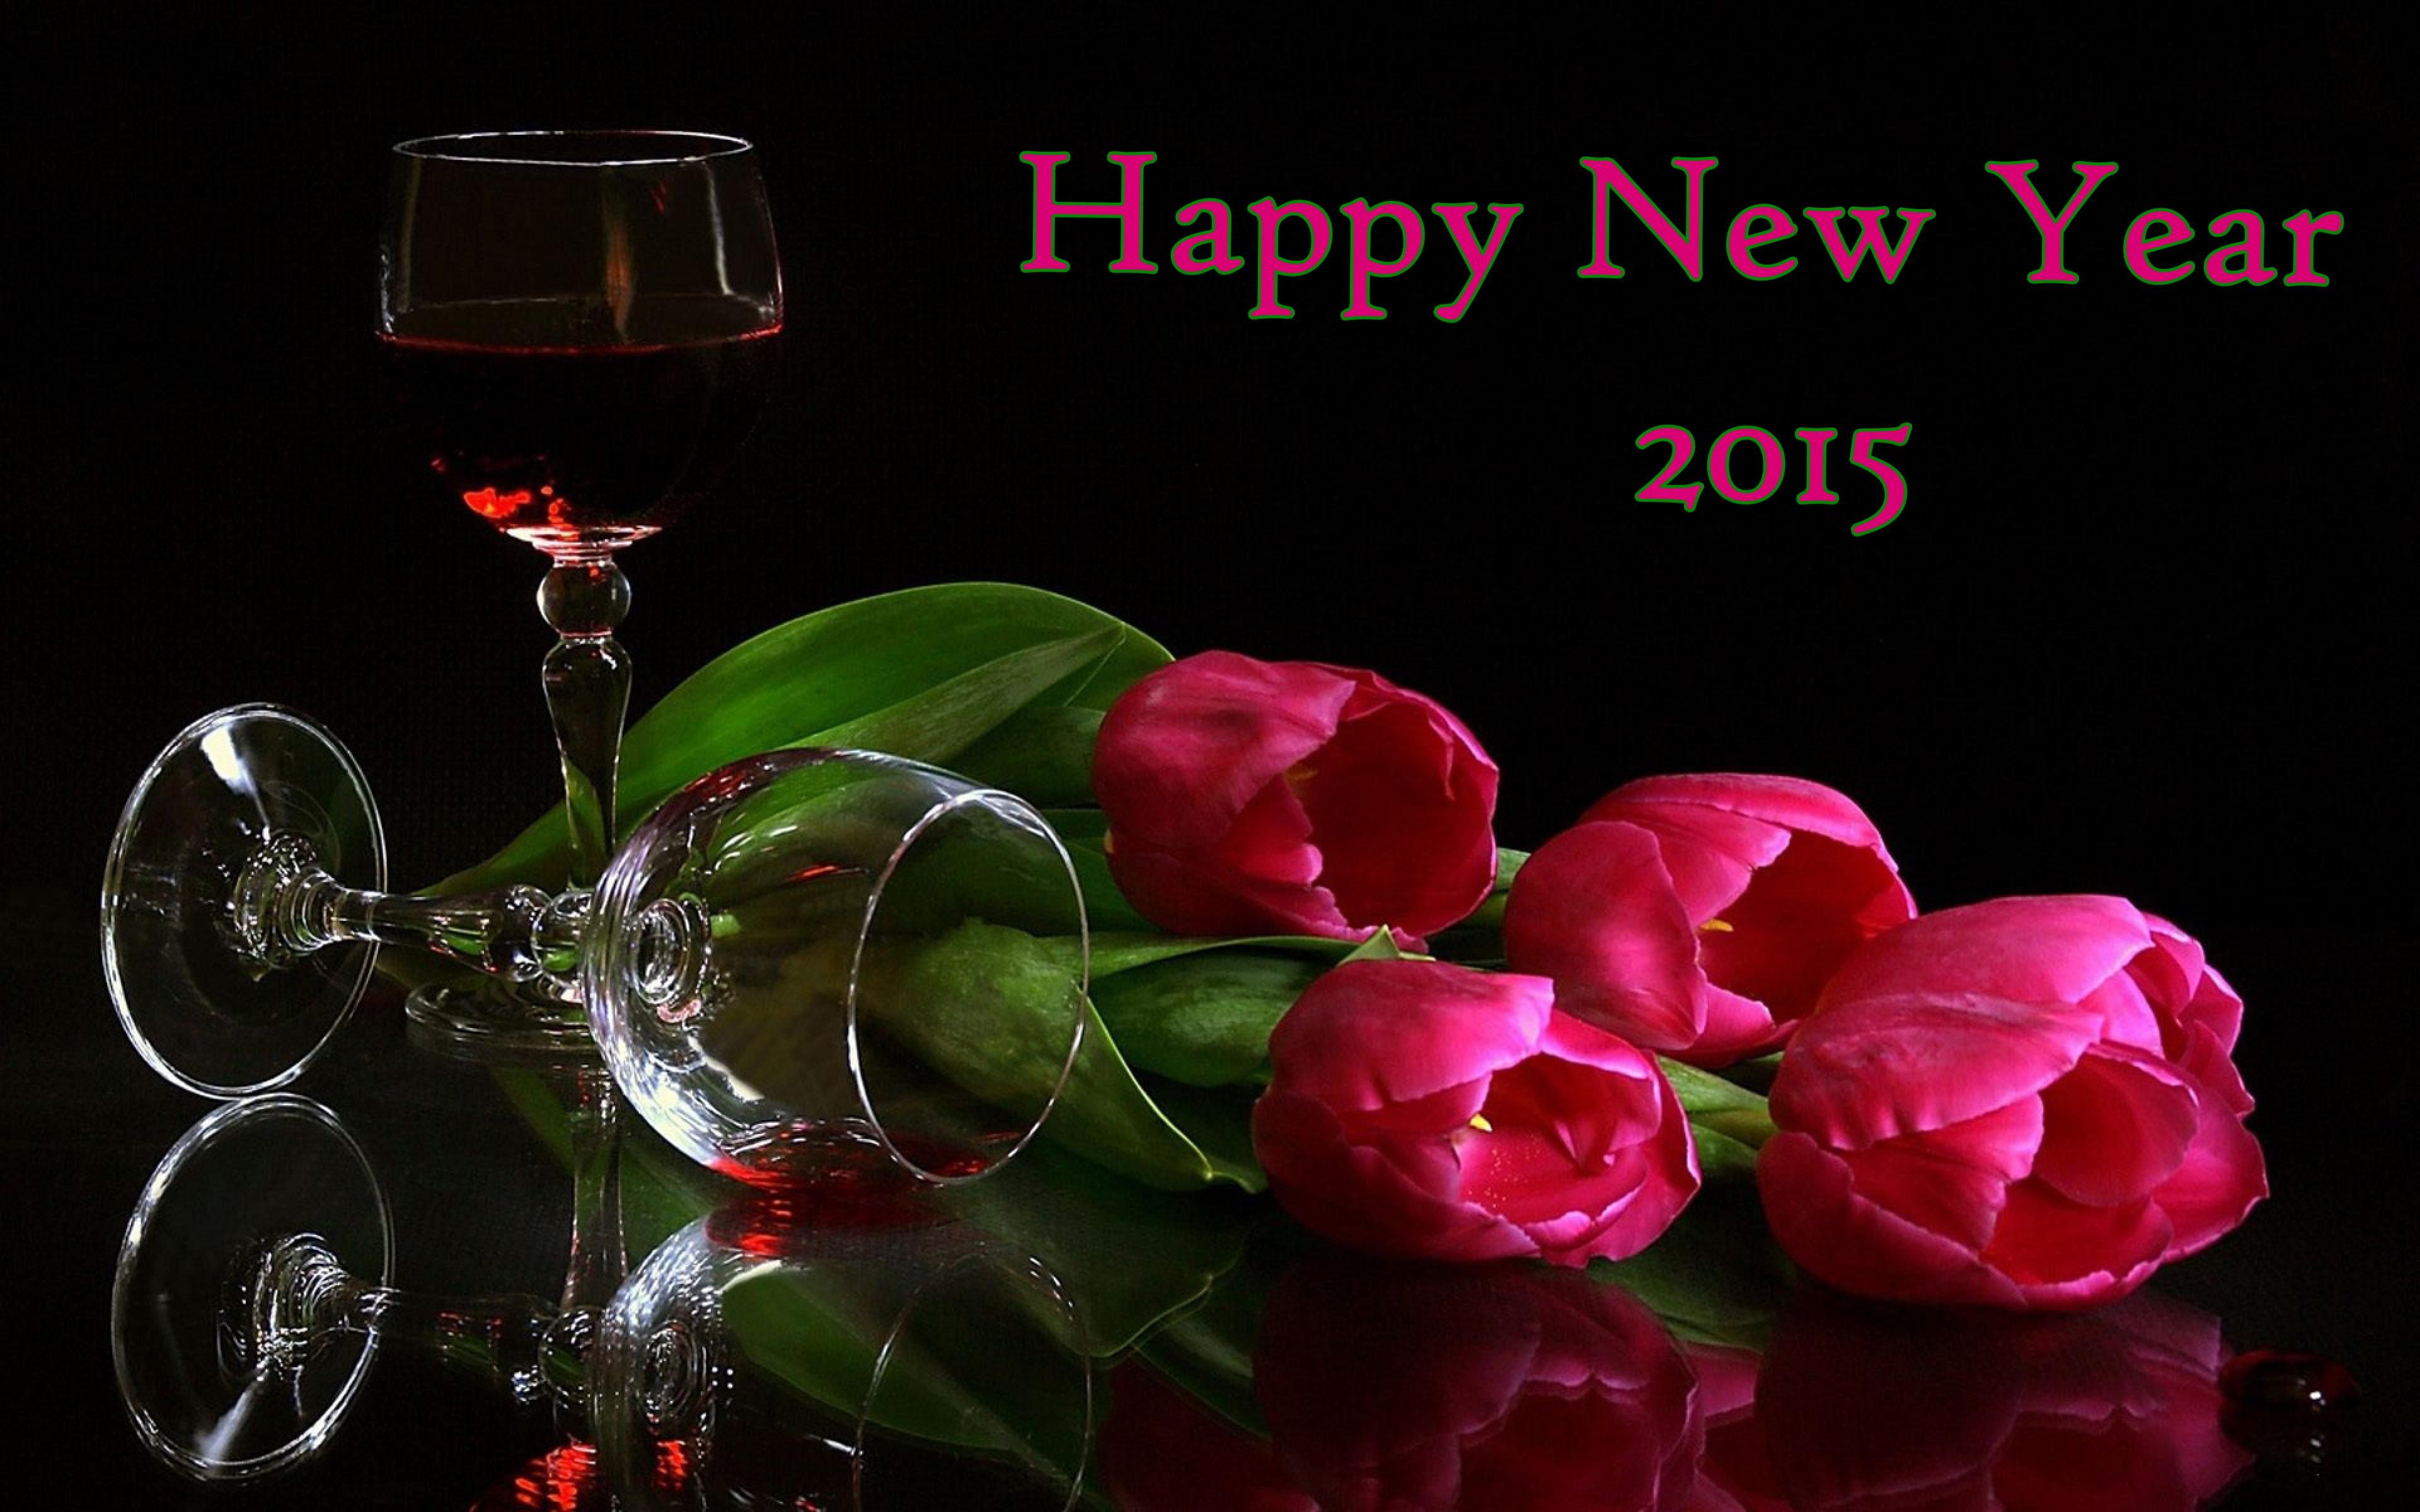 Happy New Year Hd Wallpapers Happy New Year Images Happy New Year Quotes Happy New Year 2014